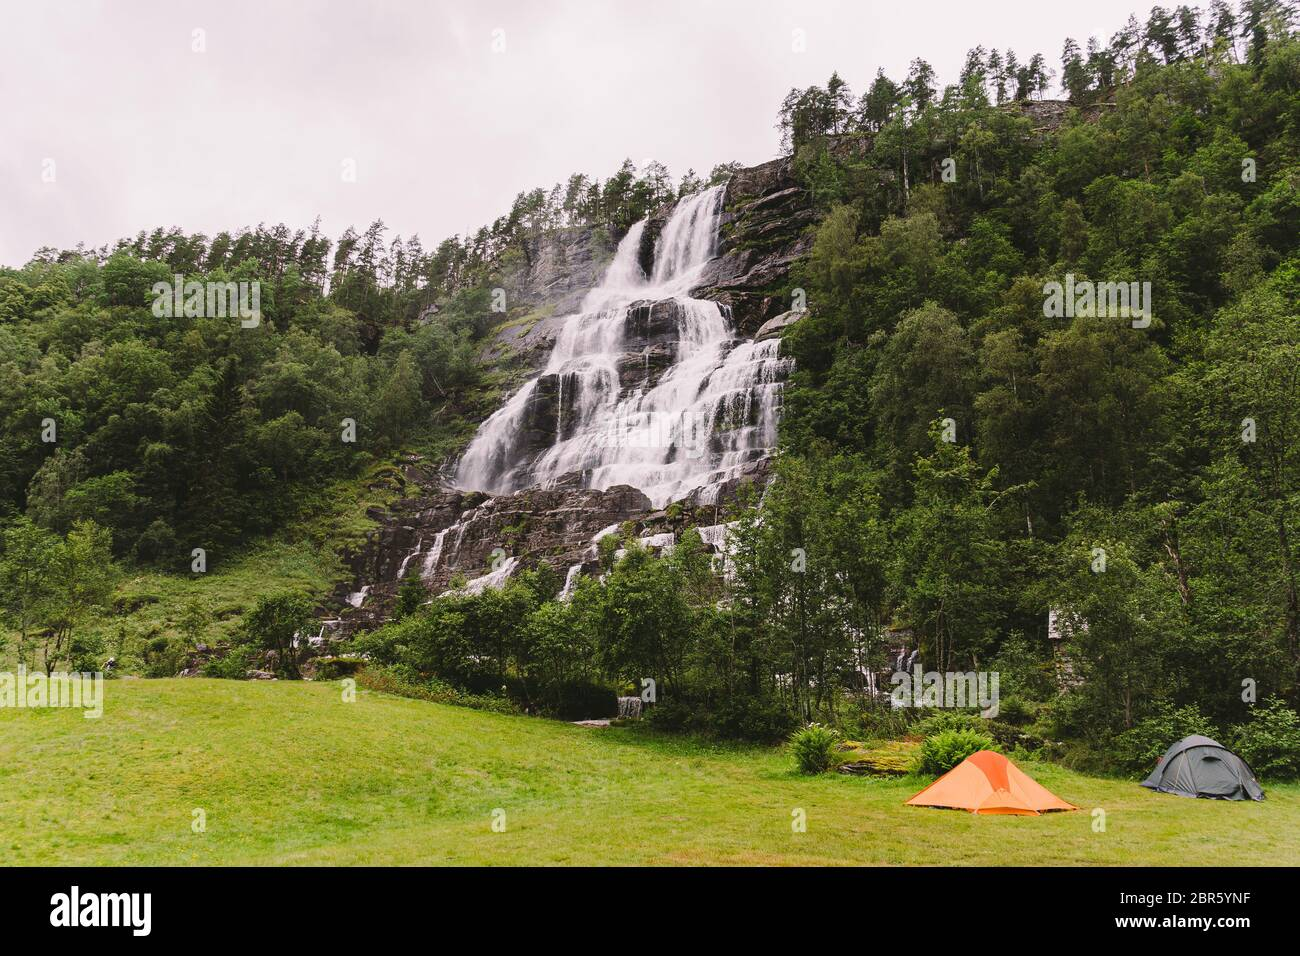 Tvinde Camping tents on the background of a waterfall Tvindefossen in Norway near Voss. Campsite in the norwegian fjords Stock Photo